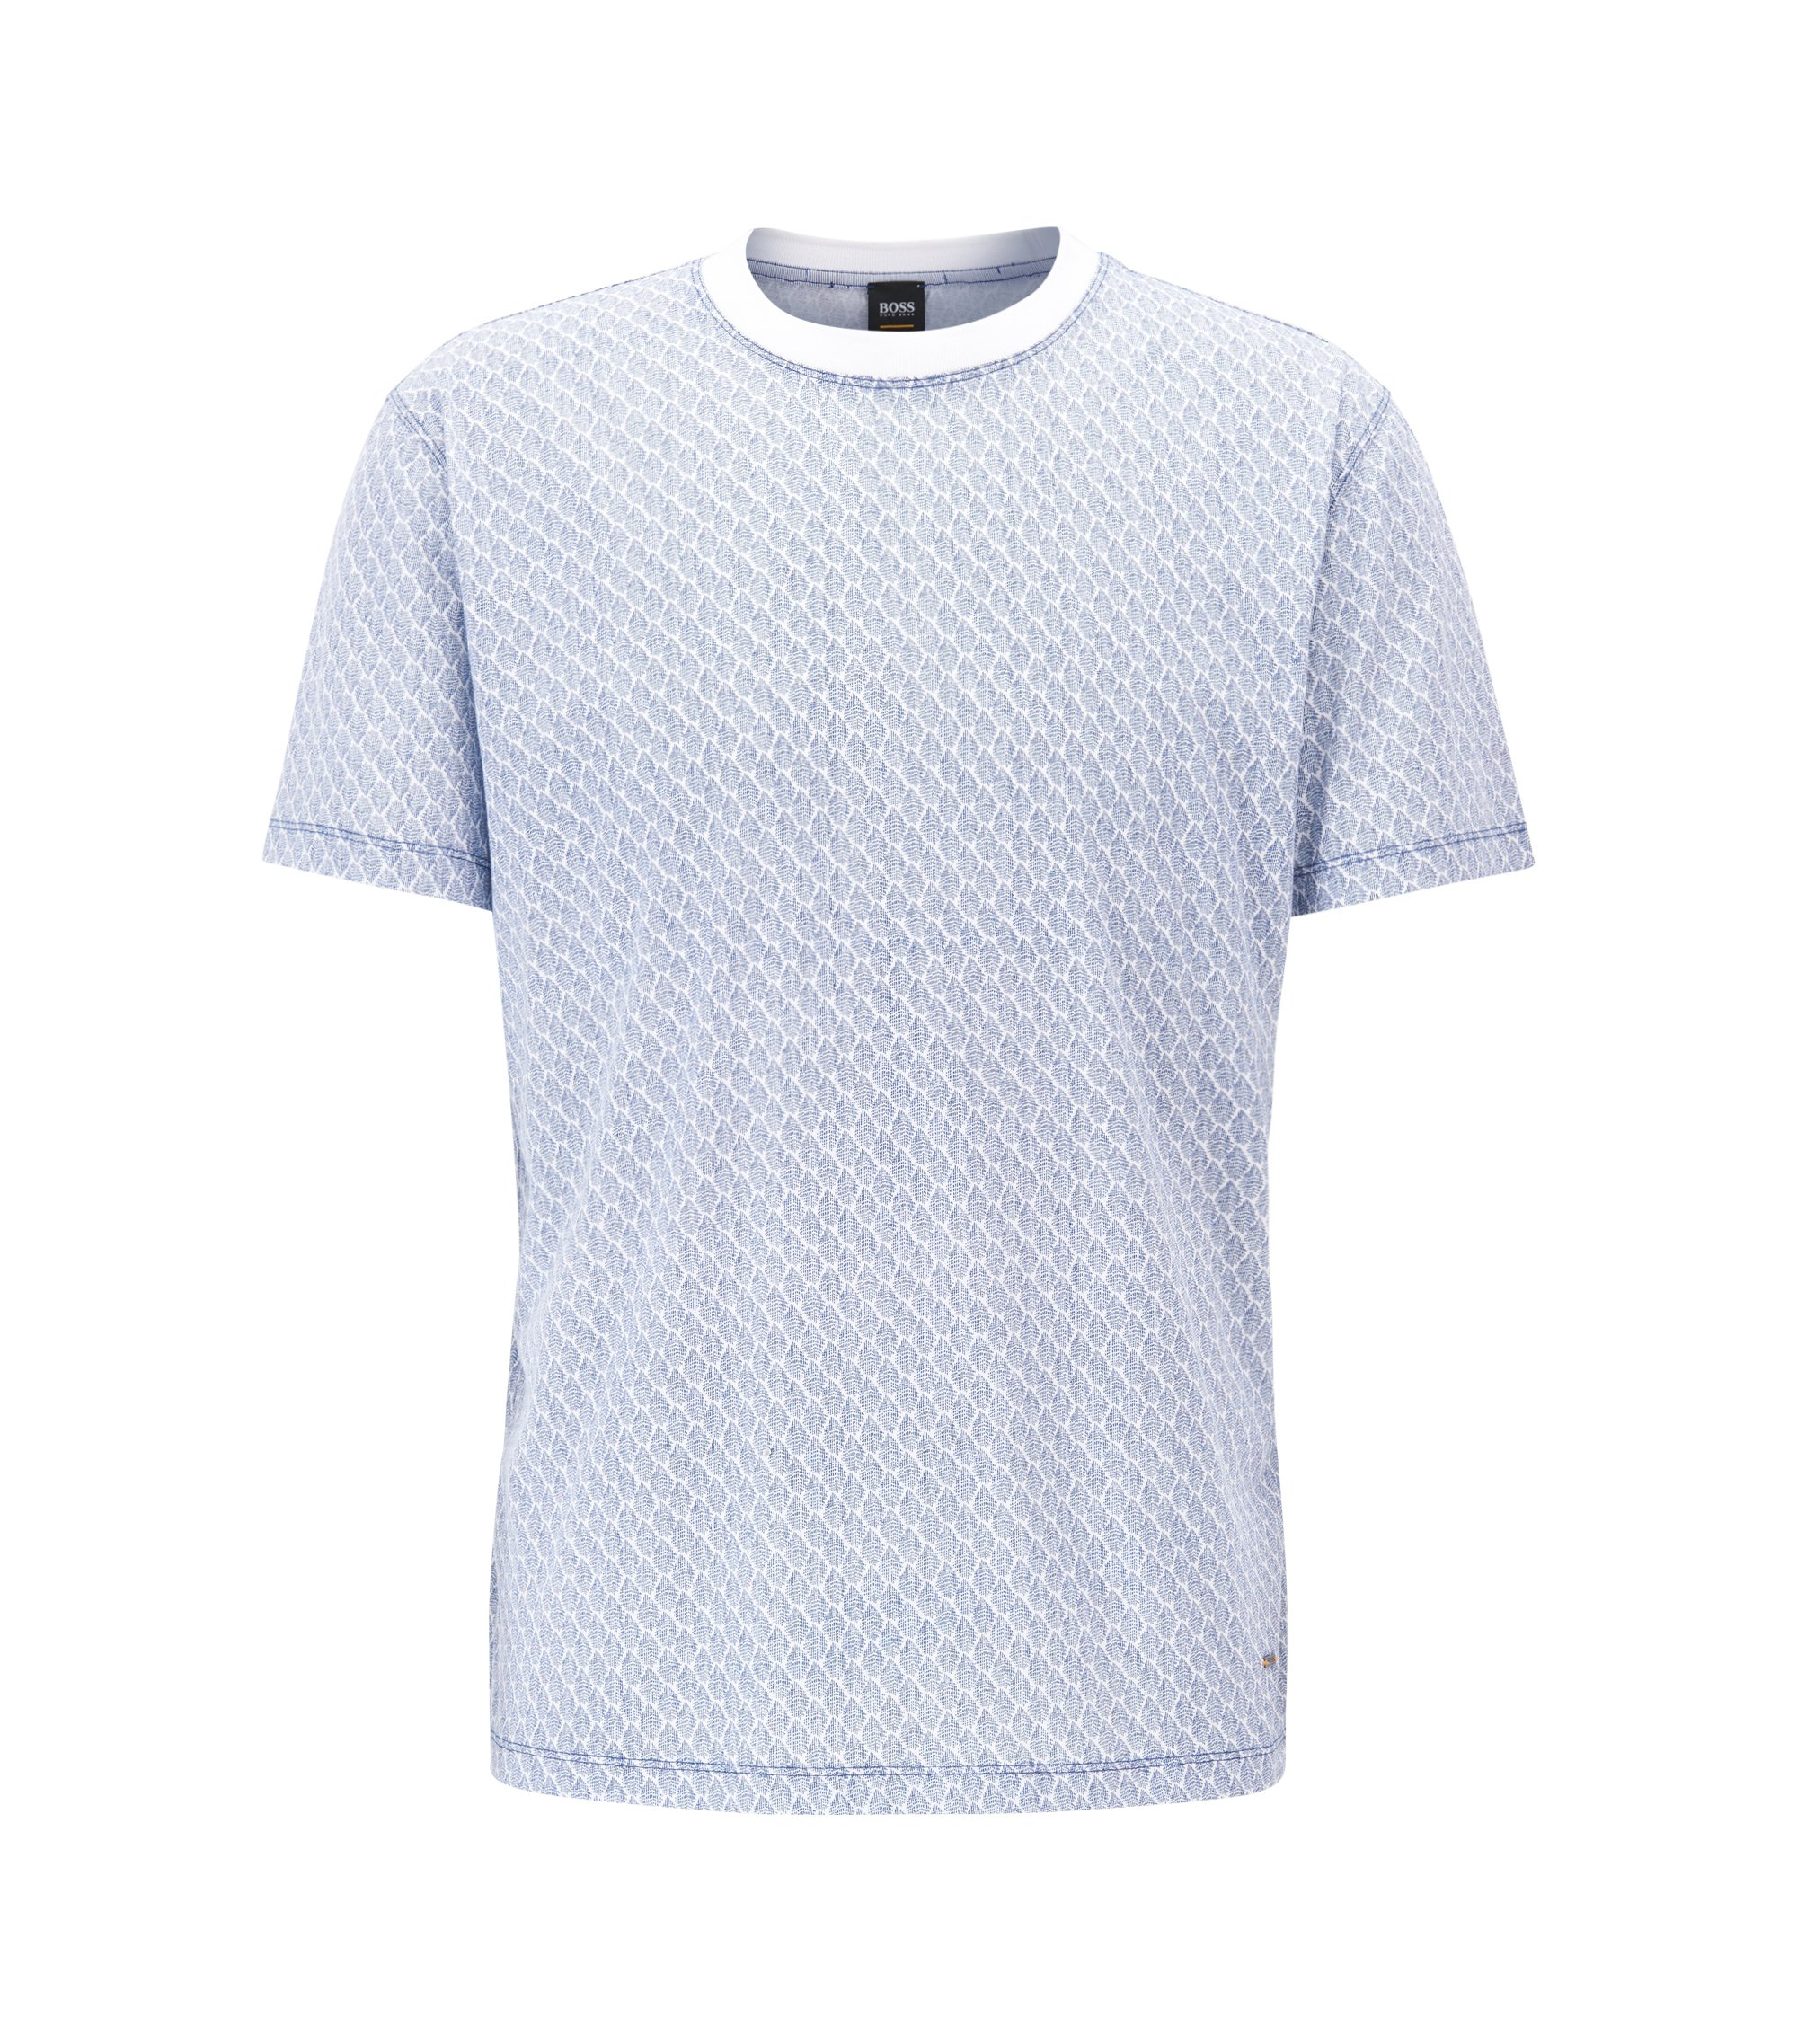 Relaxed fit T-shirt in patterned cotton jersey, Light Blue